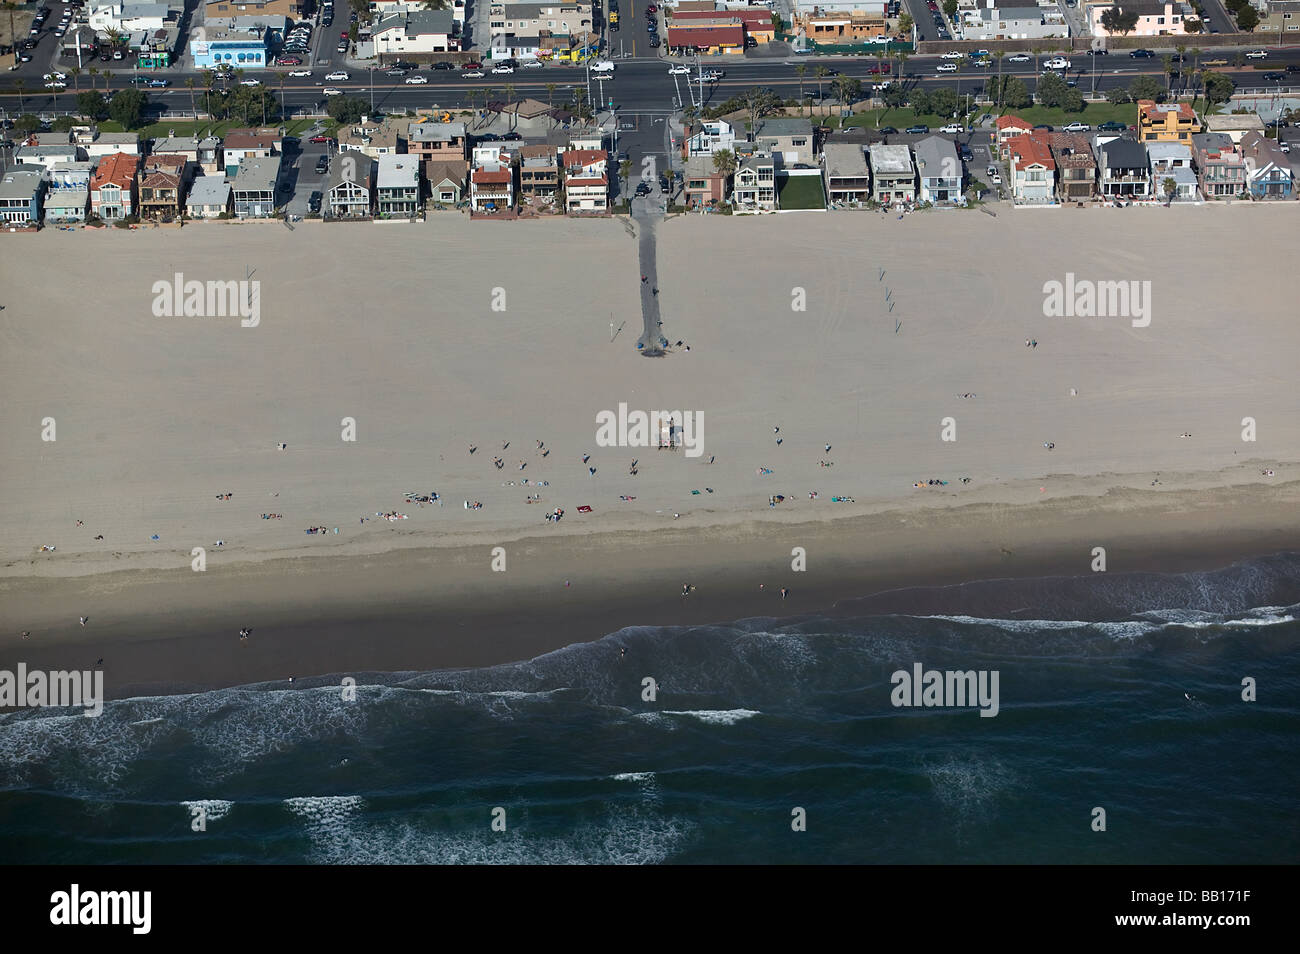 aerial view above southern California Pacific ocean beach front houses public access sunbathers near Newport Beach - Stock Image